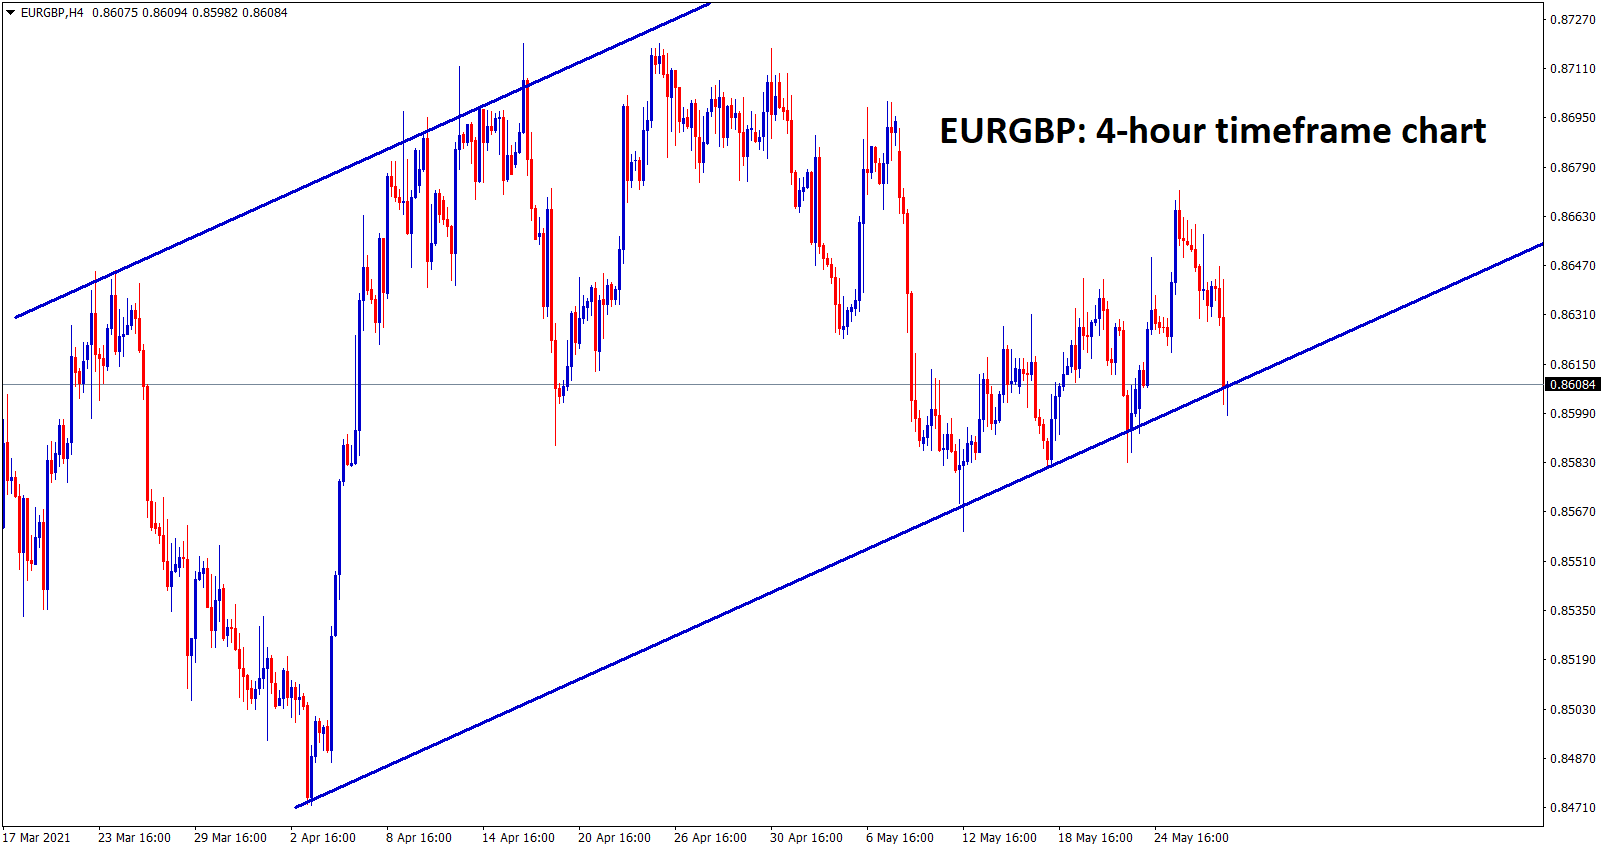 EURGBP is moving in an Ascending channel range